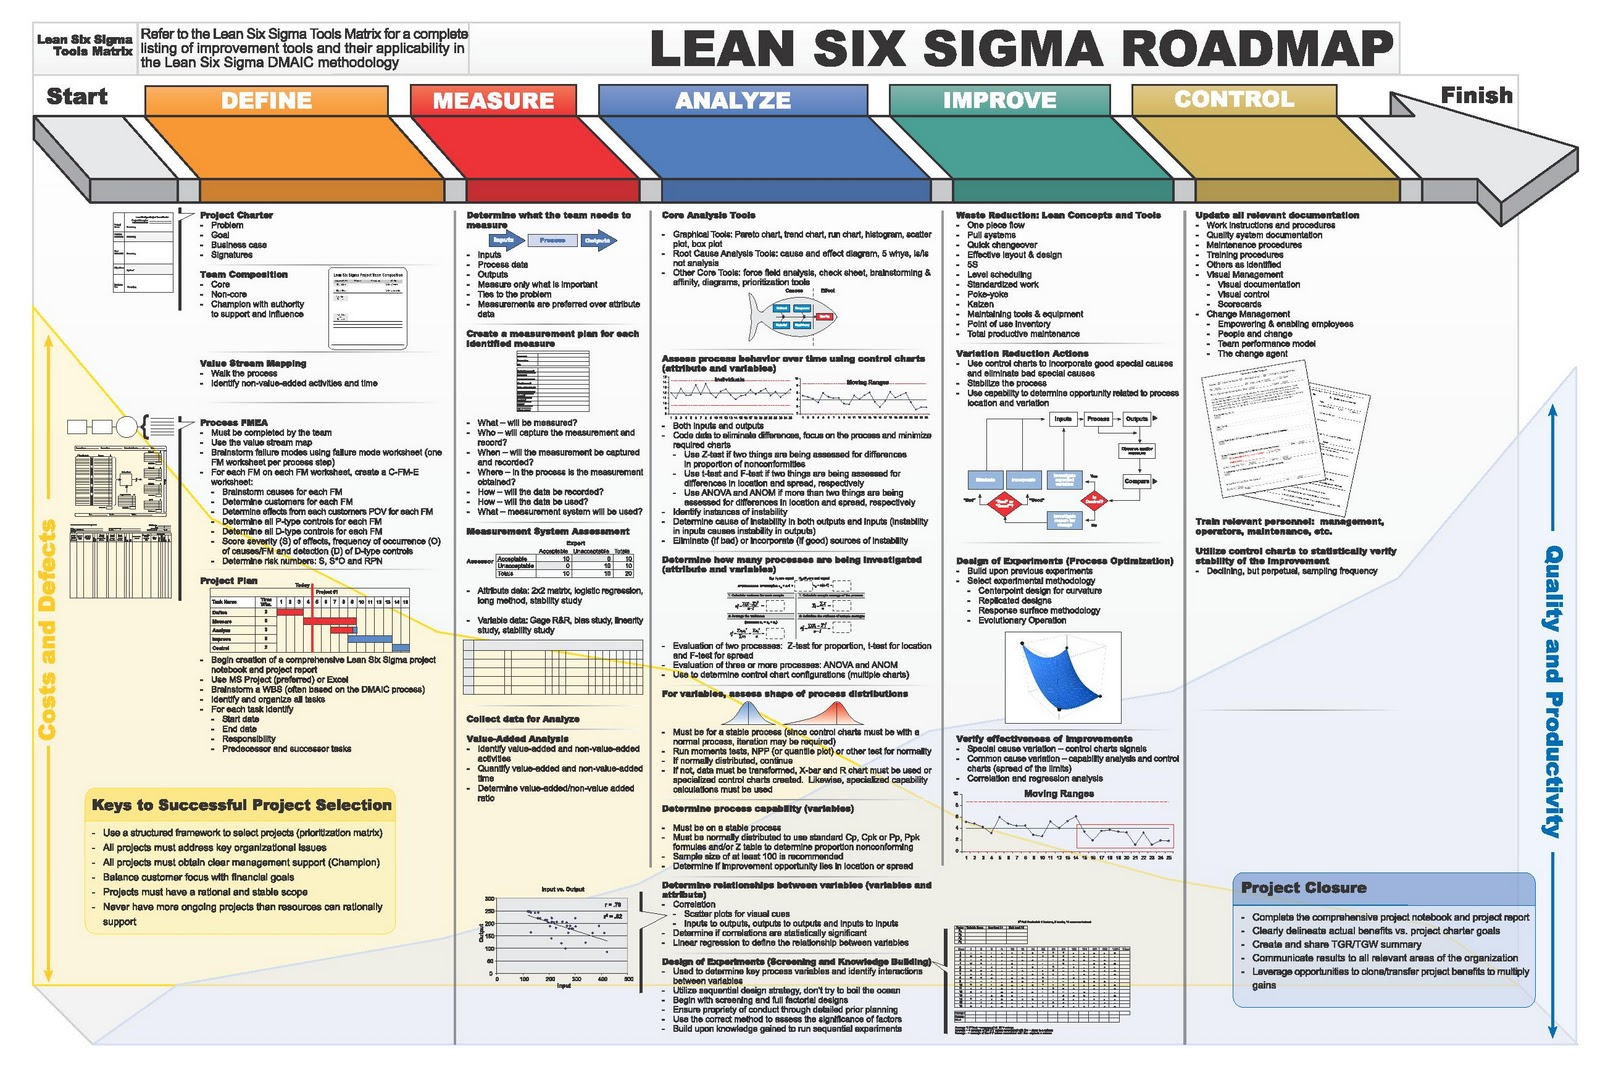 six sigma flow chart template - lss dmaic roadmap huge 1600 1067 continuous